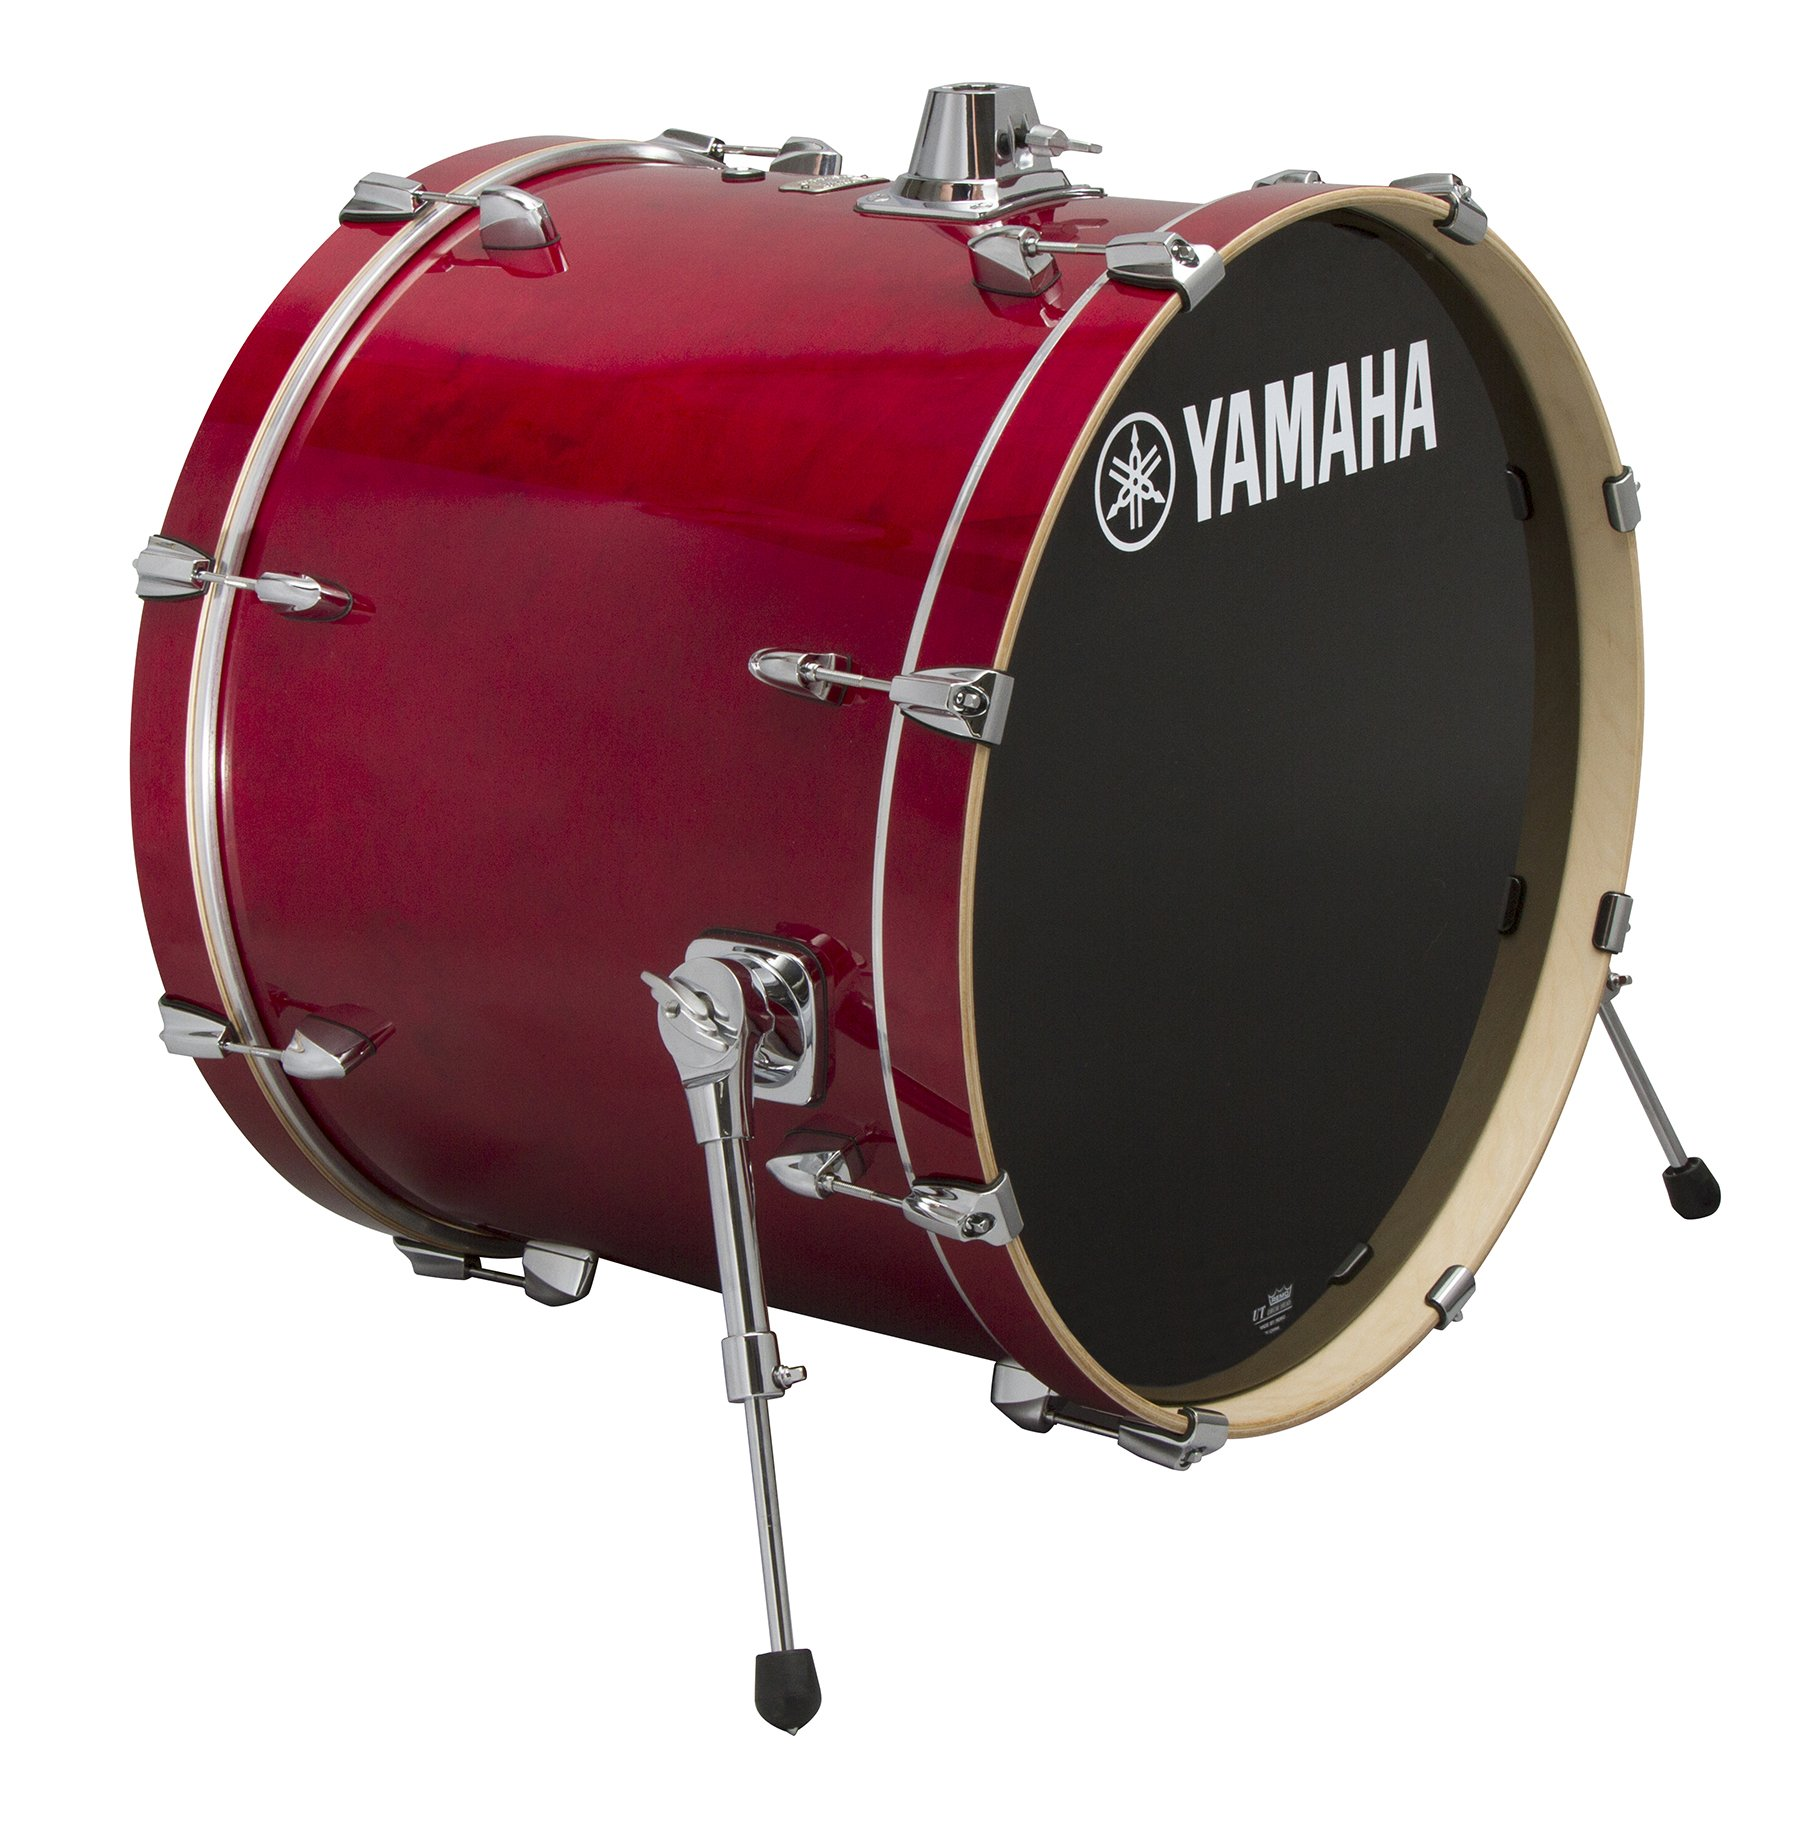 Yamaha Stage Custom Birch 20x17 Bass Drum, Cranberry Red